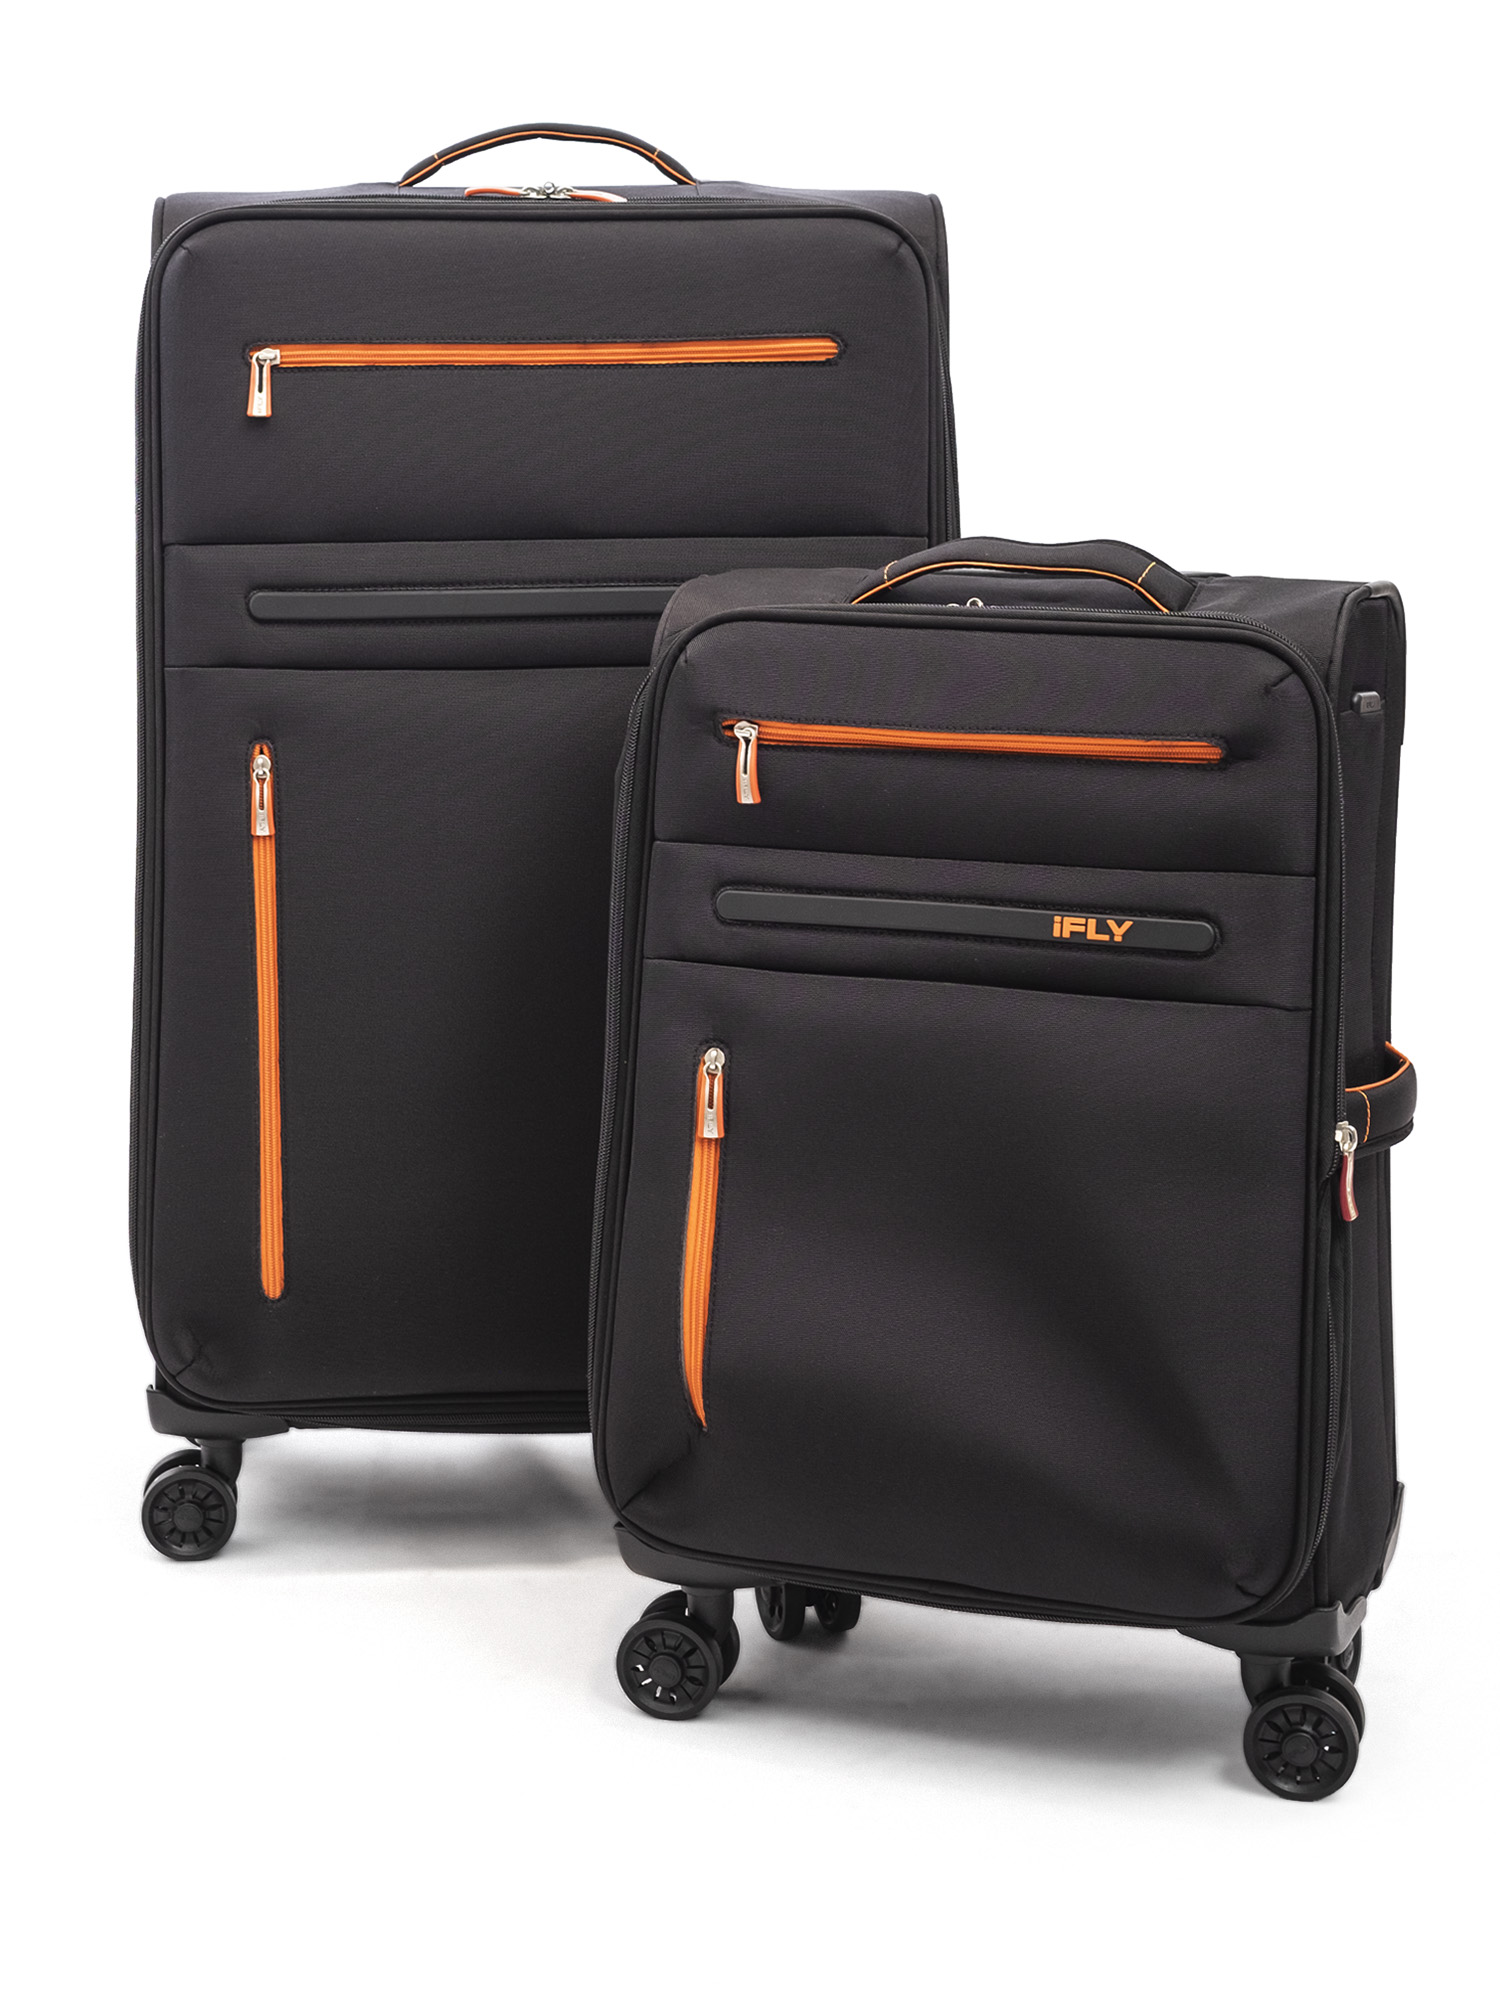 iFLY Soft Sided Luggage Omni 2 piece set, Black/Orange